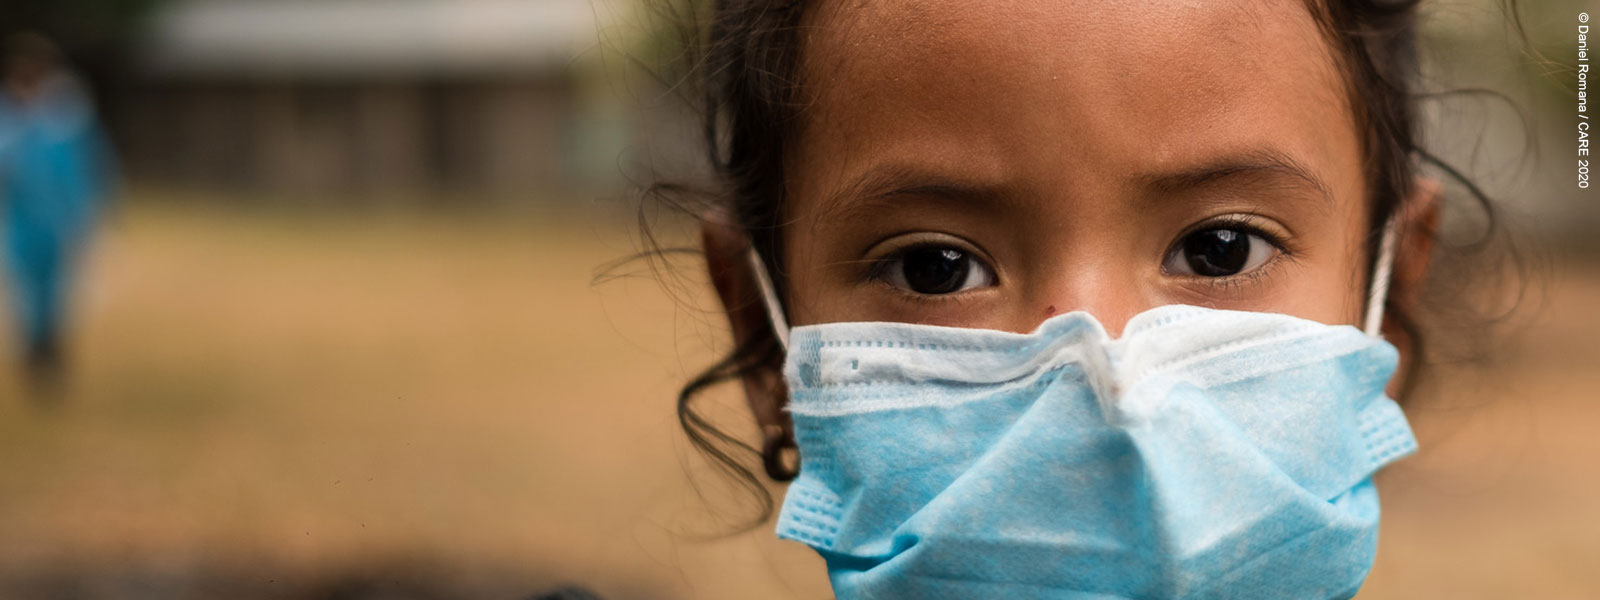 A young girl in Honduras, wearing face mask